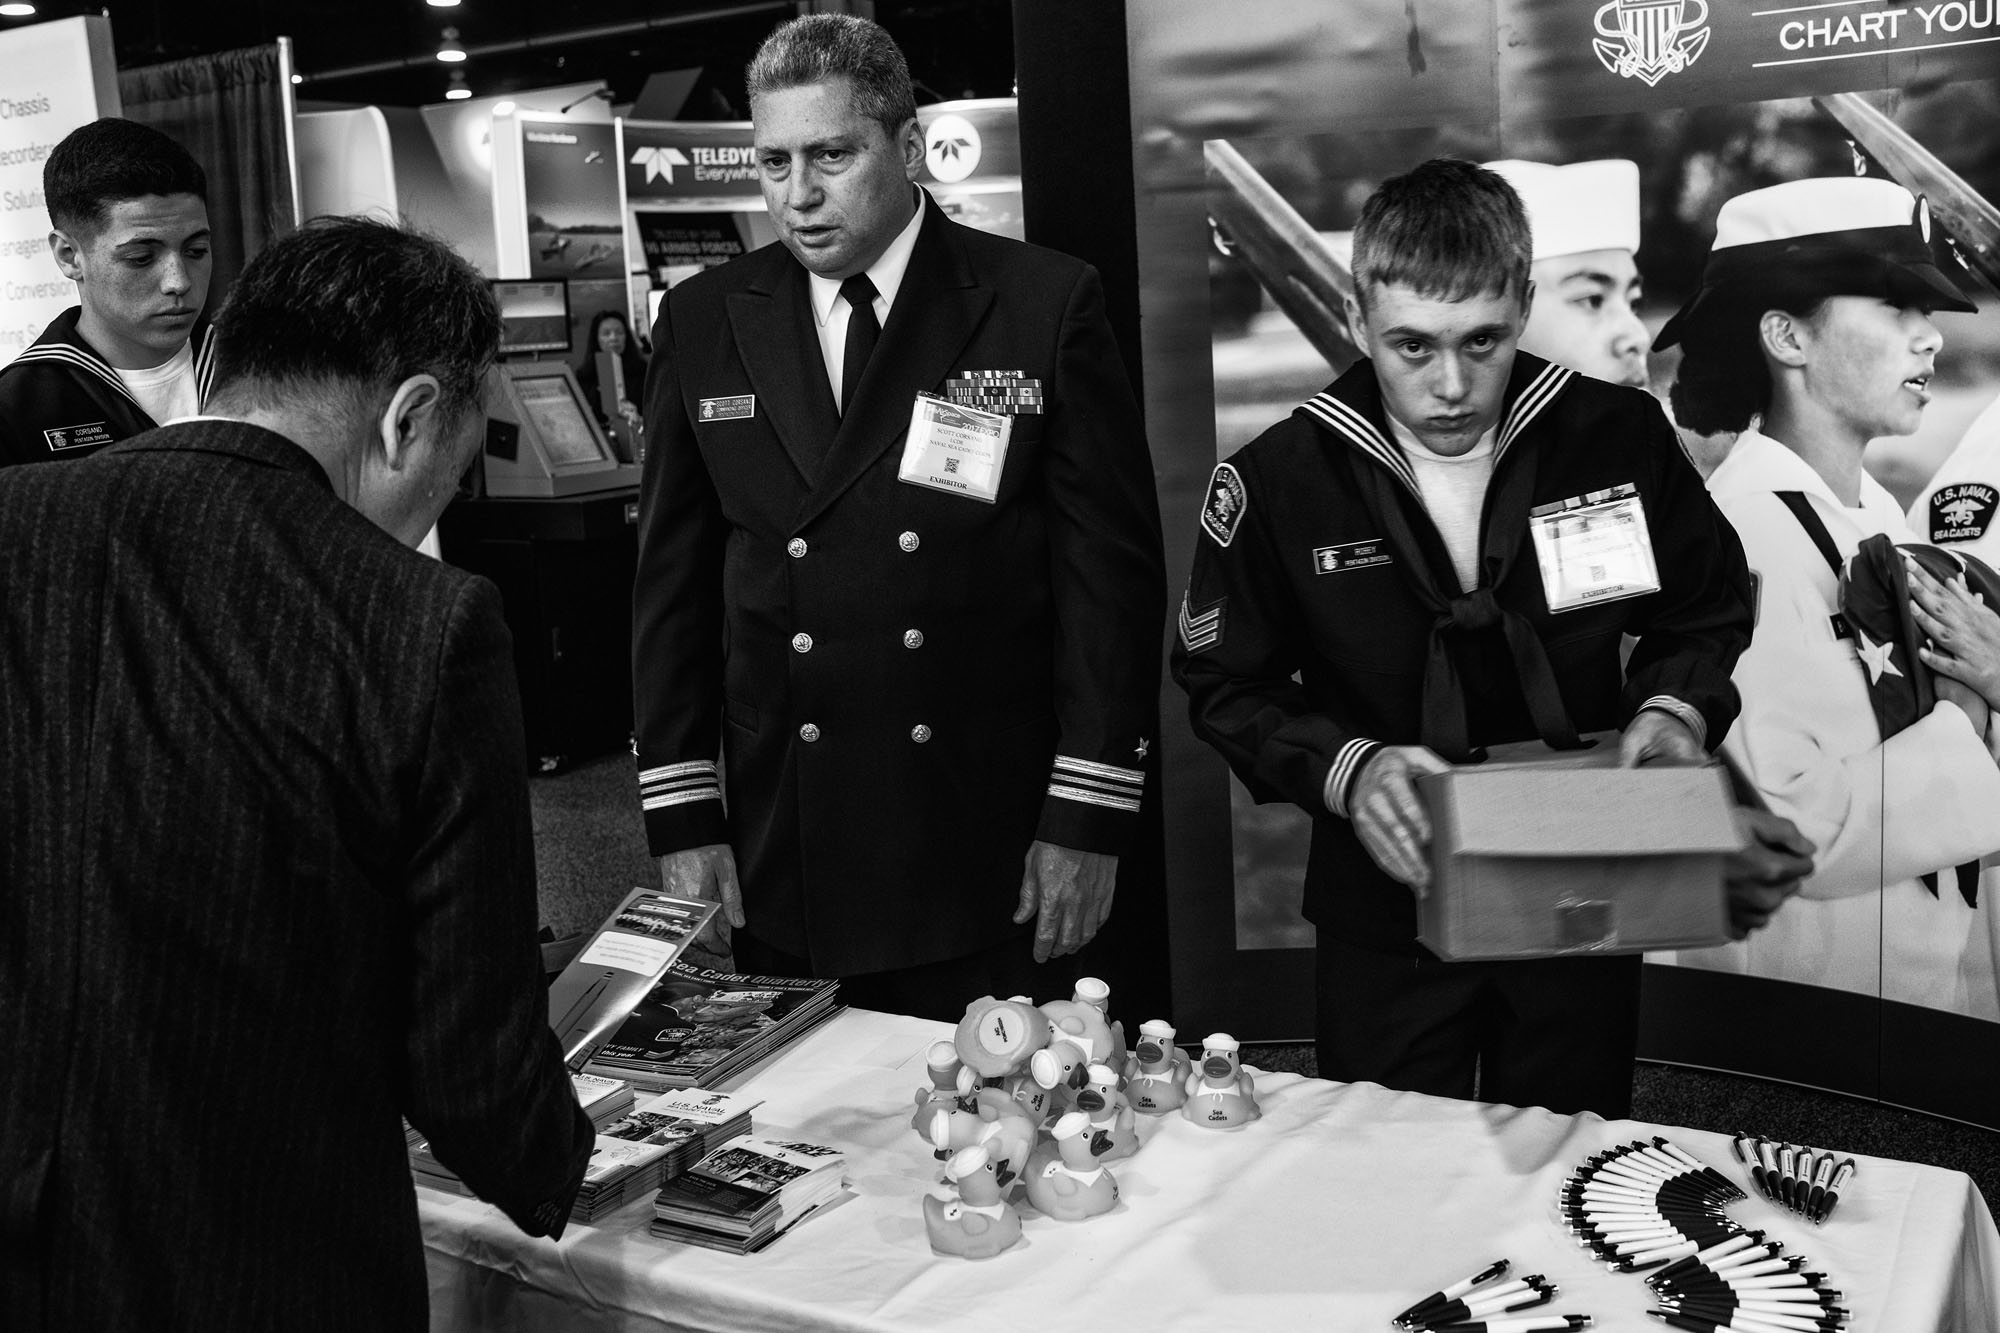 Exhibitors at The Navy League's Sea-Air-Space Exposition in National Harbor, Maryland on April 3, 2017. The Trump Administration's proposed budget would increase military spending by 10%, or $54 billion in the coming fiscal year.